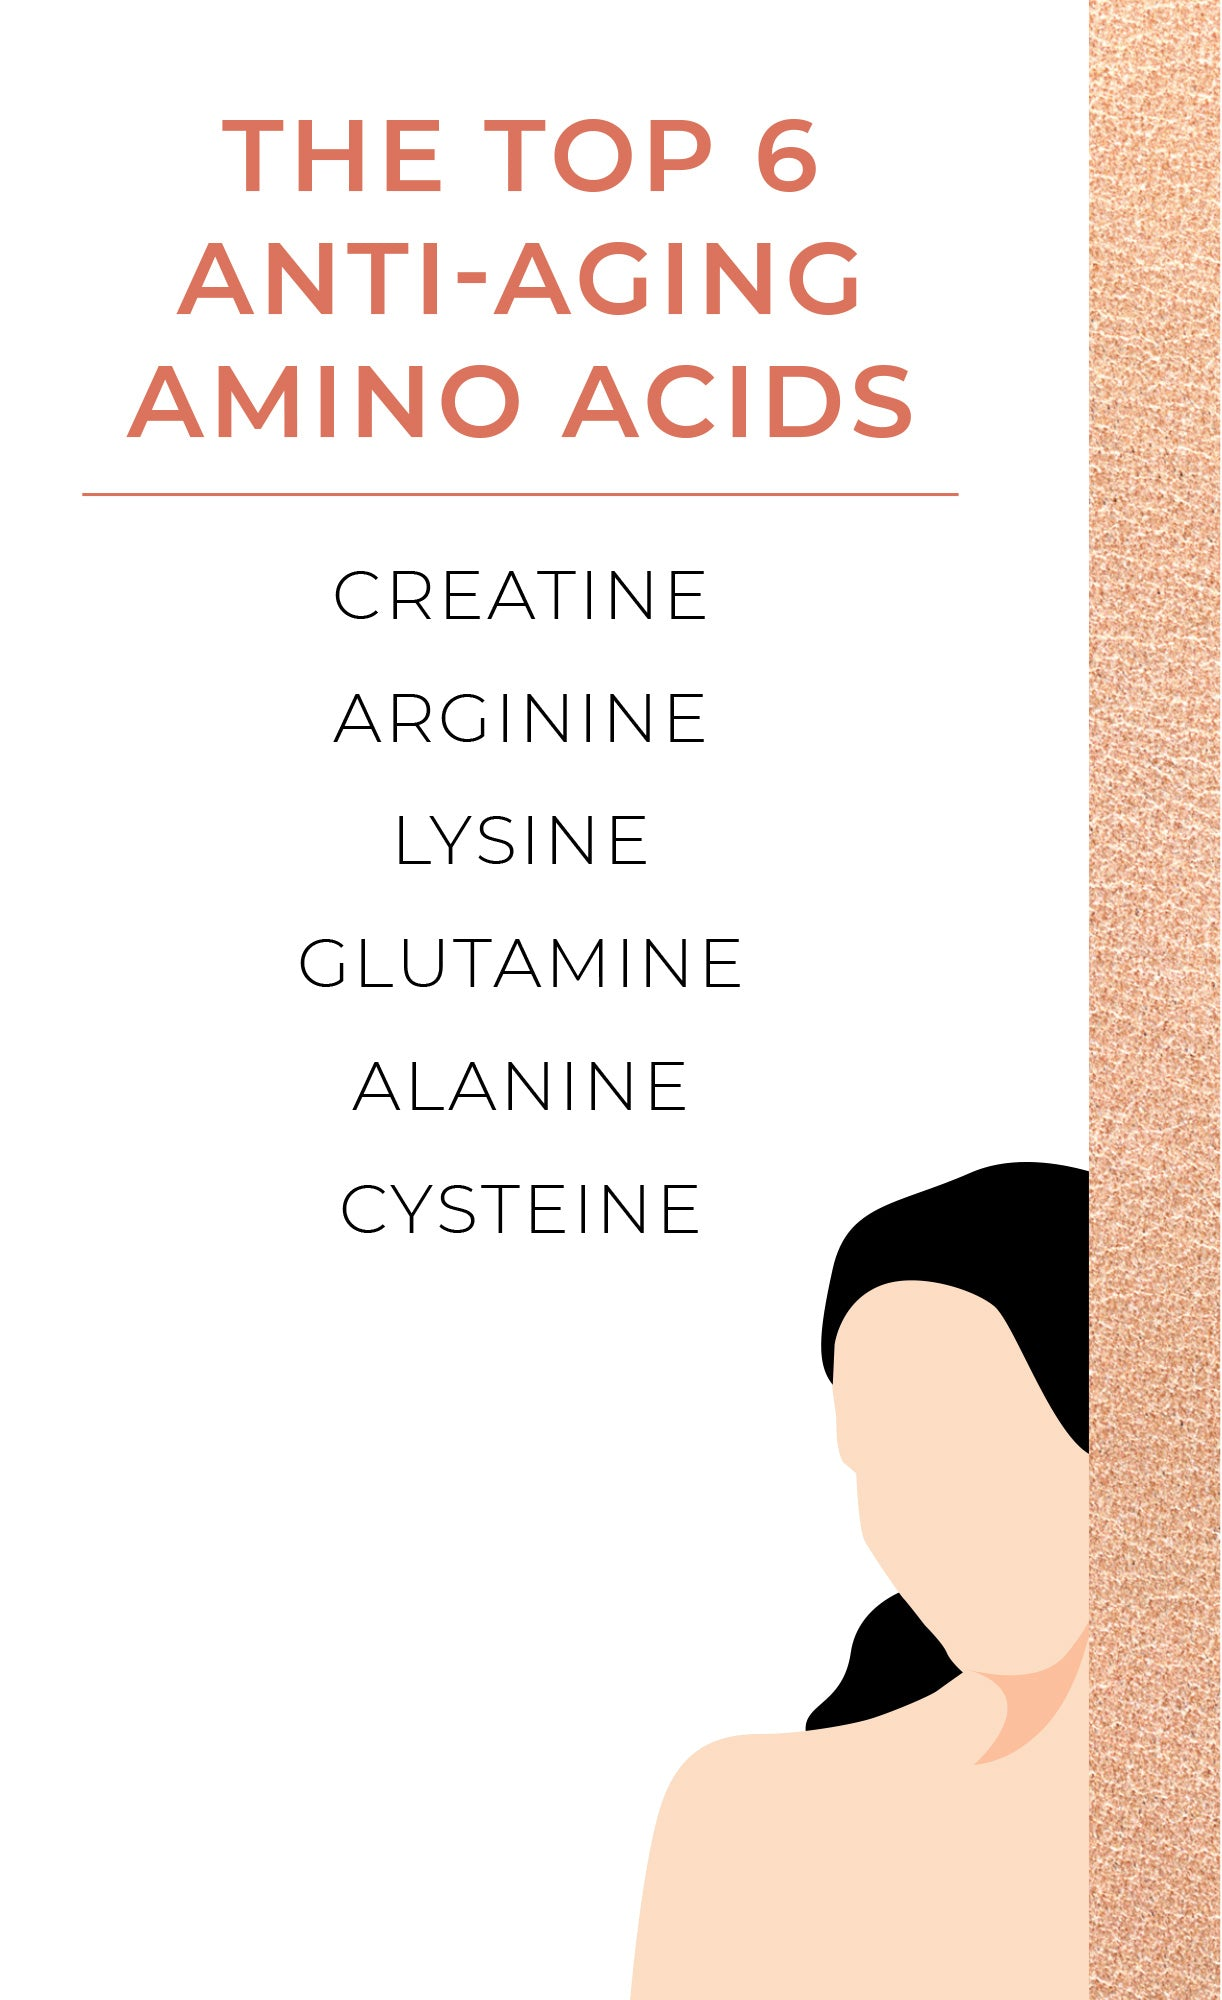 When it comes to aging, there's one thing we know for sure—it happens. There are many preventative measures we can take to protect against accelerated aging and improve quality of life into our golden years. Nutritive support with anti-aging amino acids is one of the top ways to keep aging at arm's length.